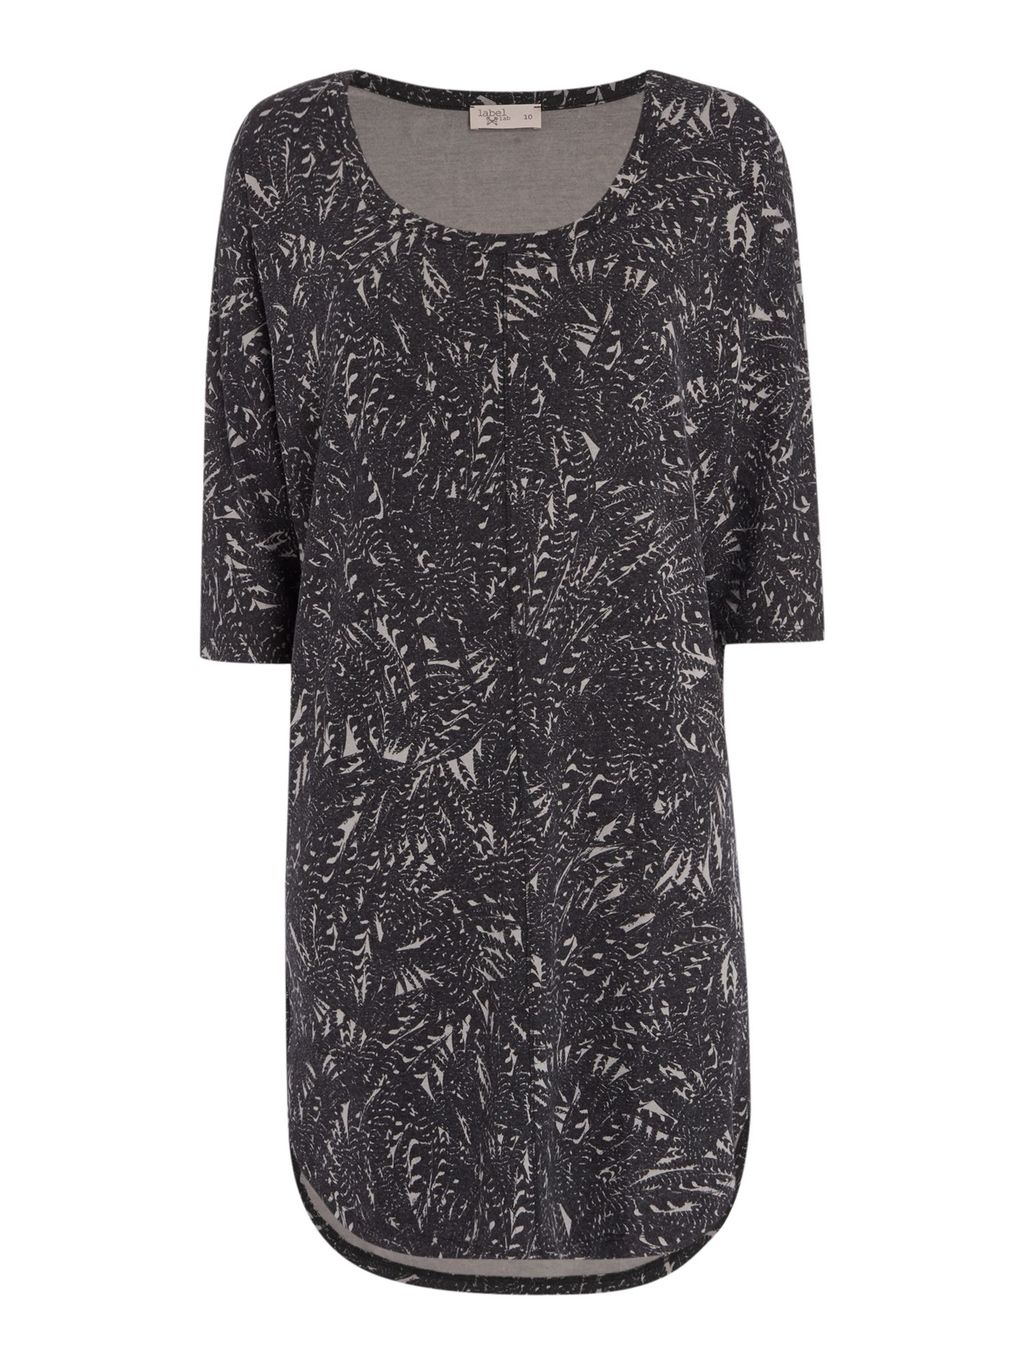 Feather Print Supersoft Cocoon Dress, Grey - style: tunic; length: mid thigh; predominant colour: charcoal; secondary colour: light grey; occasions: casual; fit: straight cut; neckline: scoop; fibres: cotton - stretch; sleeve length: 3/4 length; sleeve style: standard; pattern type: fabric; pattern size: standard; pattern: patterned/print; texture group: jersey - stretchy/drapey; season: s/s 2016